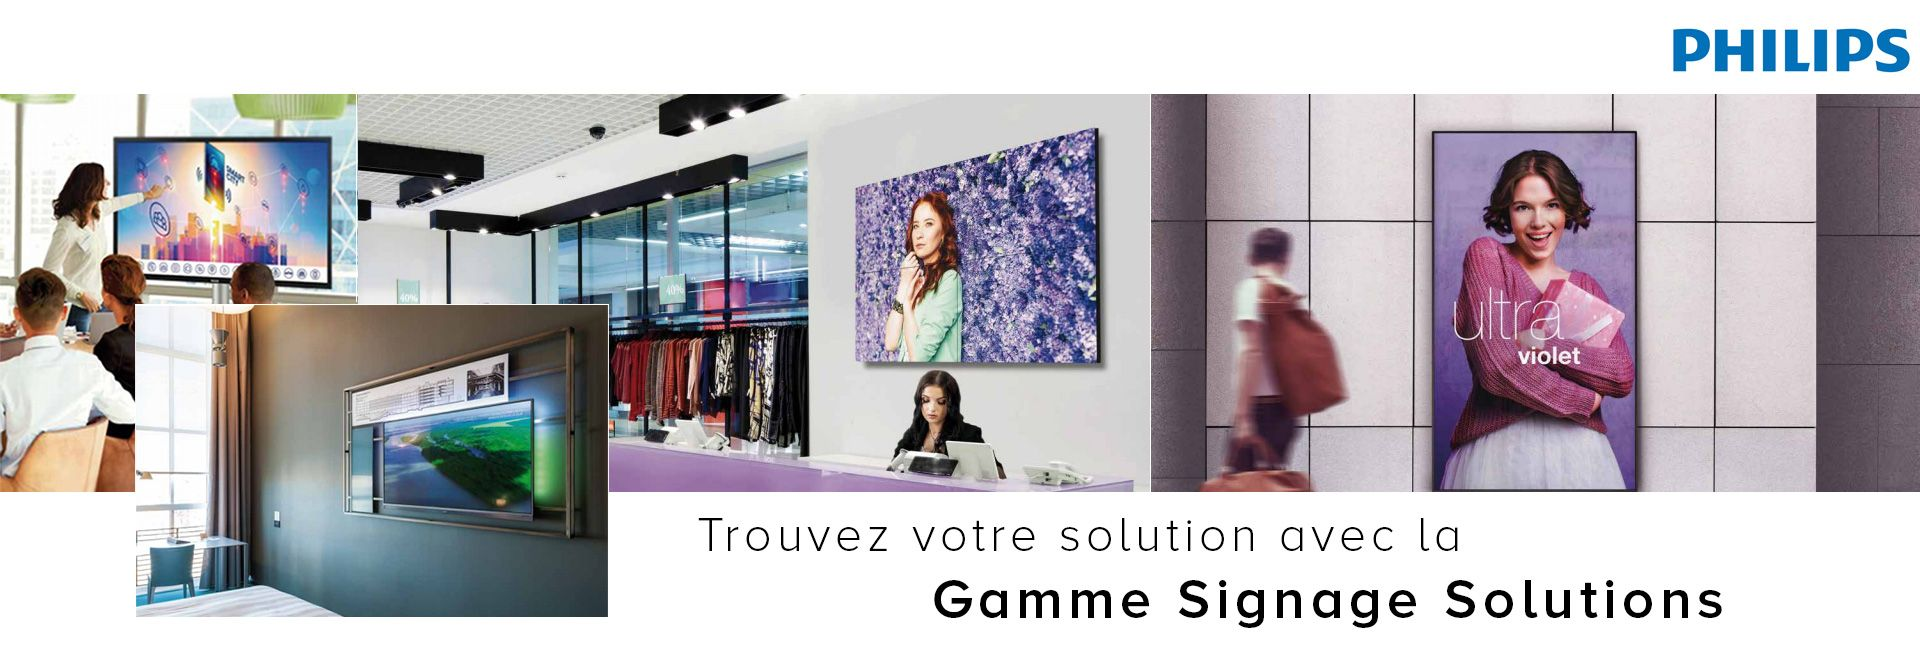 Gamme Signage Solutions